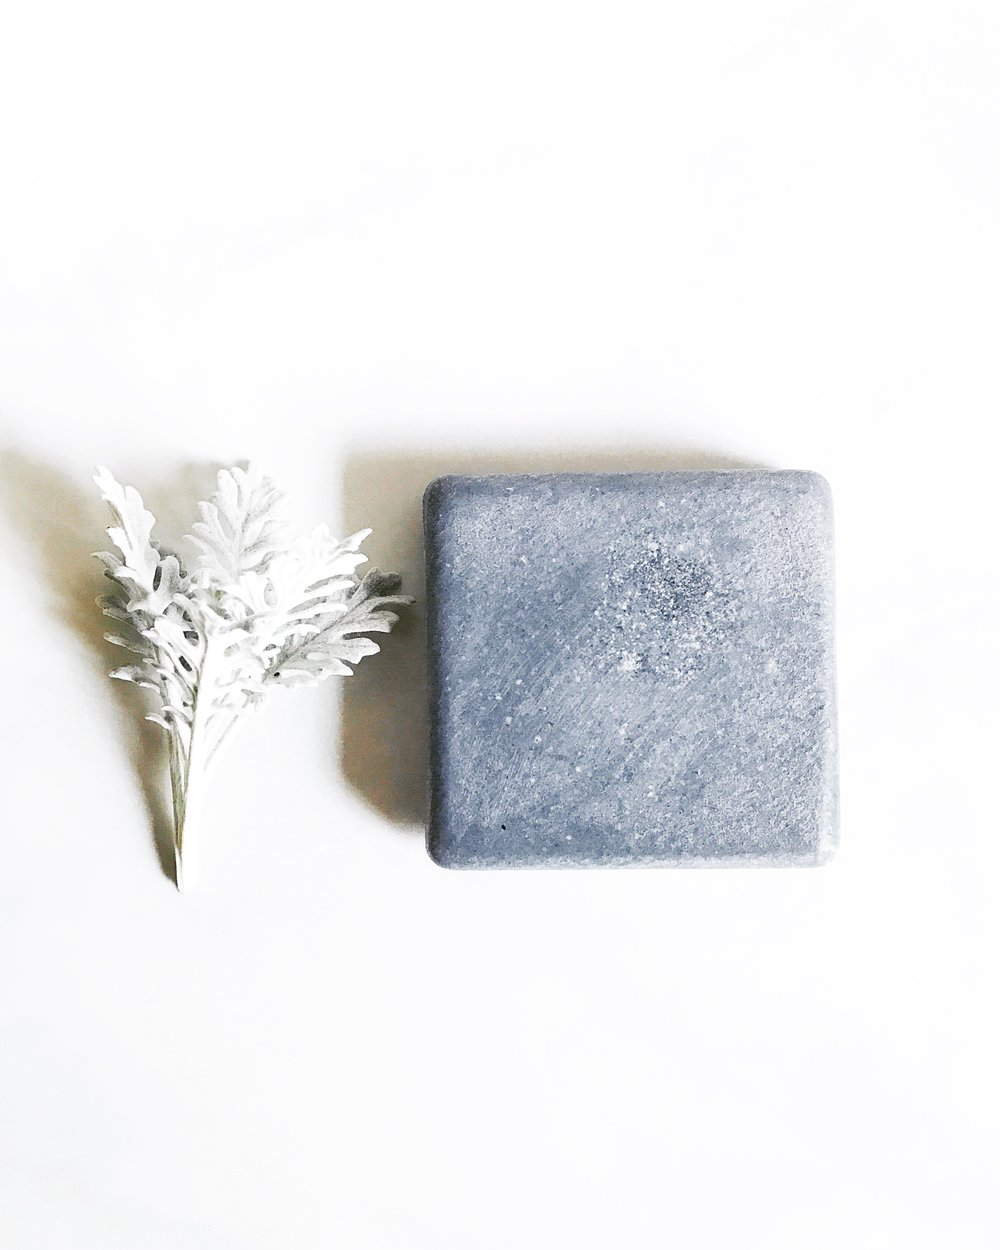 Charcoal + Kaolin Clay Bar | SALE